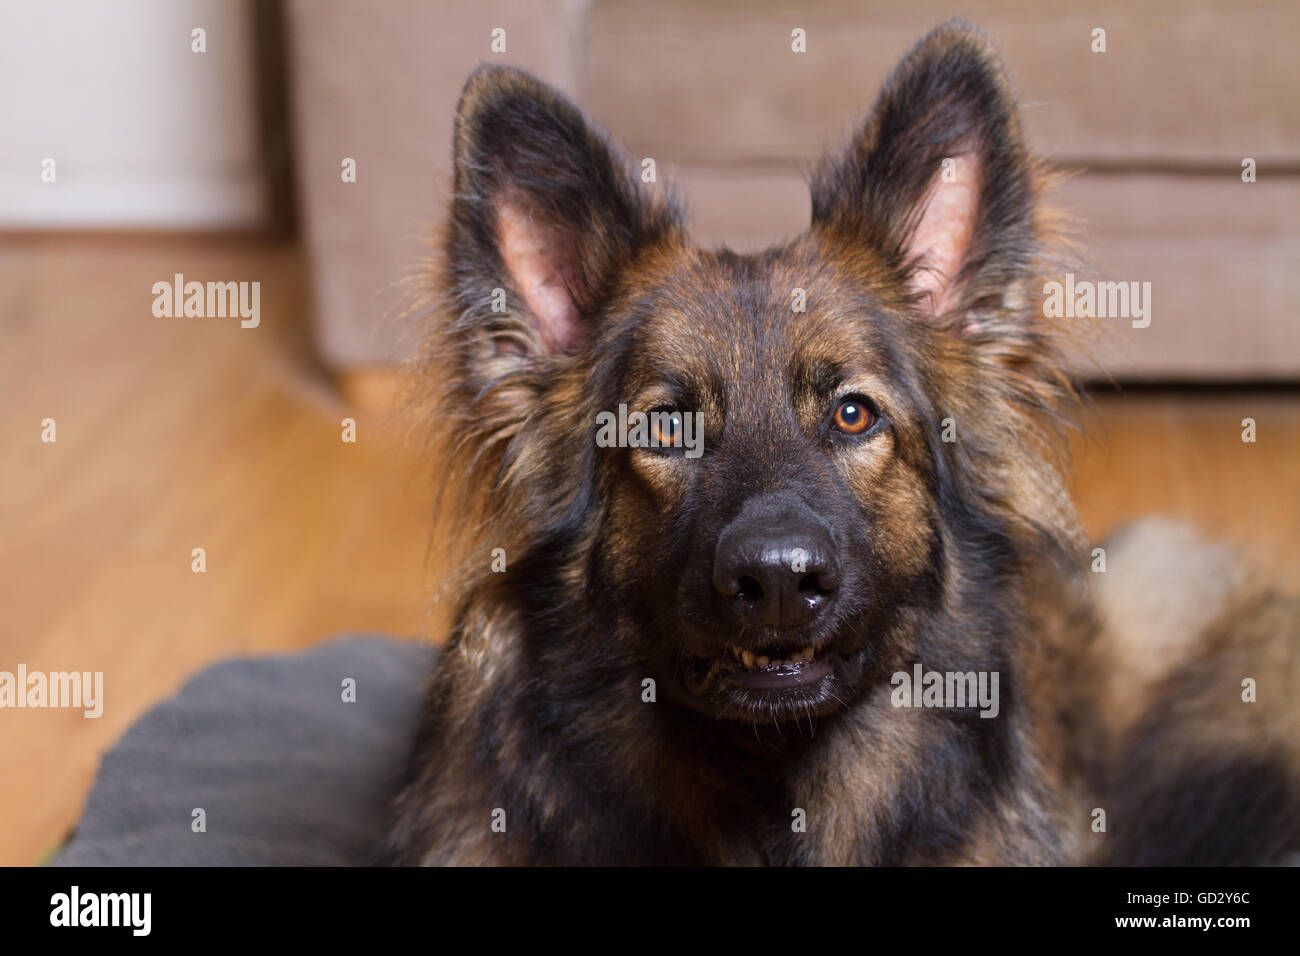 German Shepherd Dog on his bed in a house looking at the camera. - Stock Image